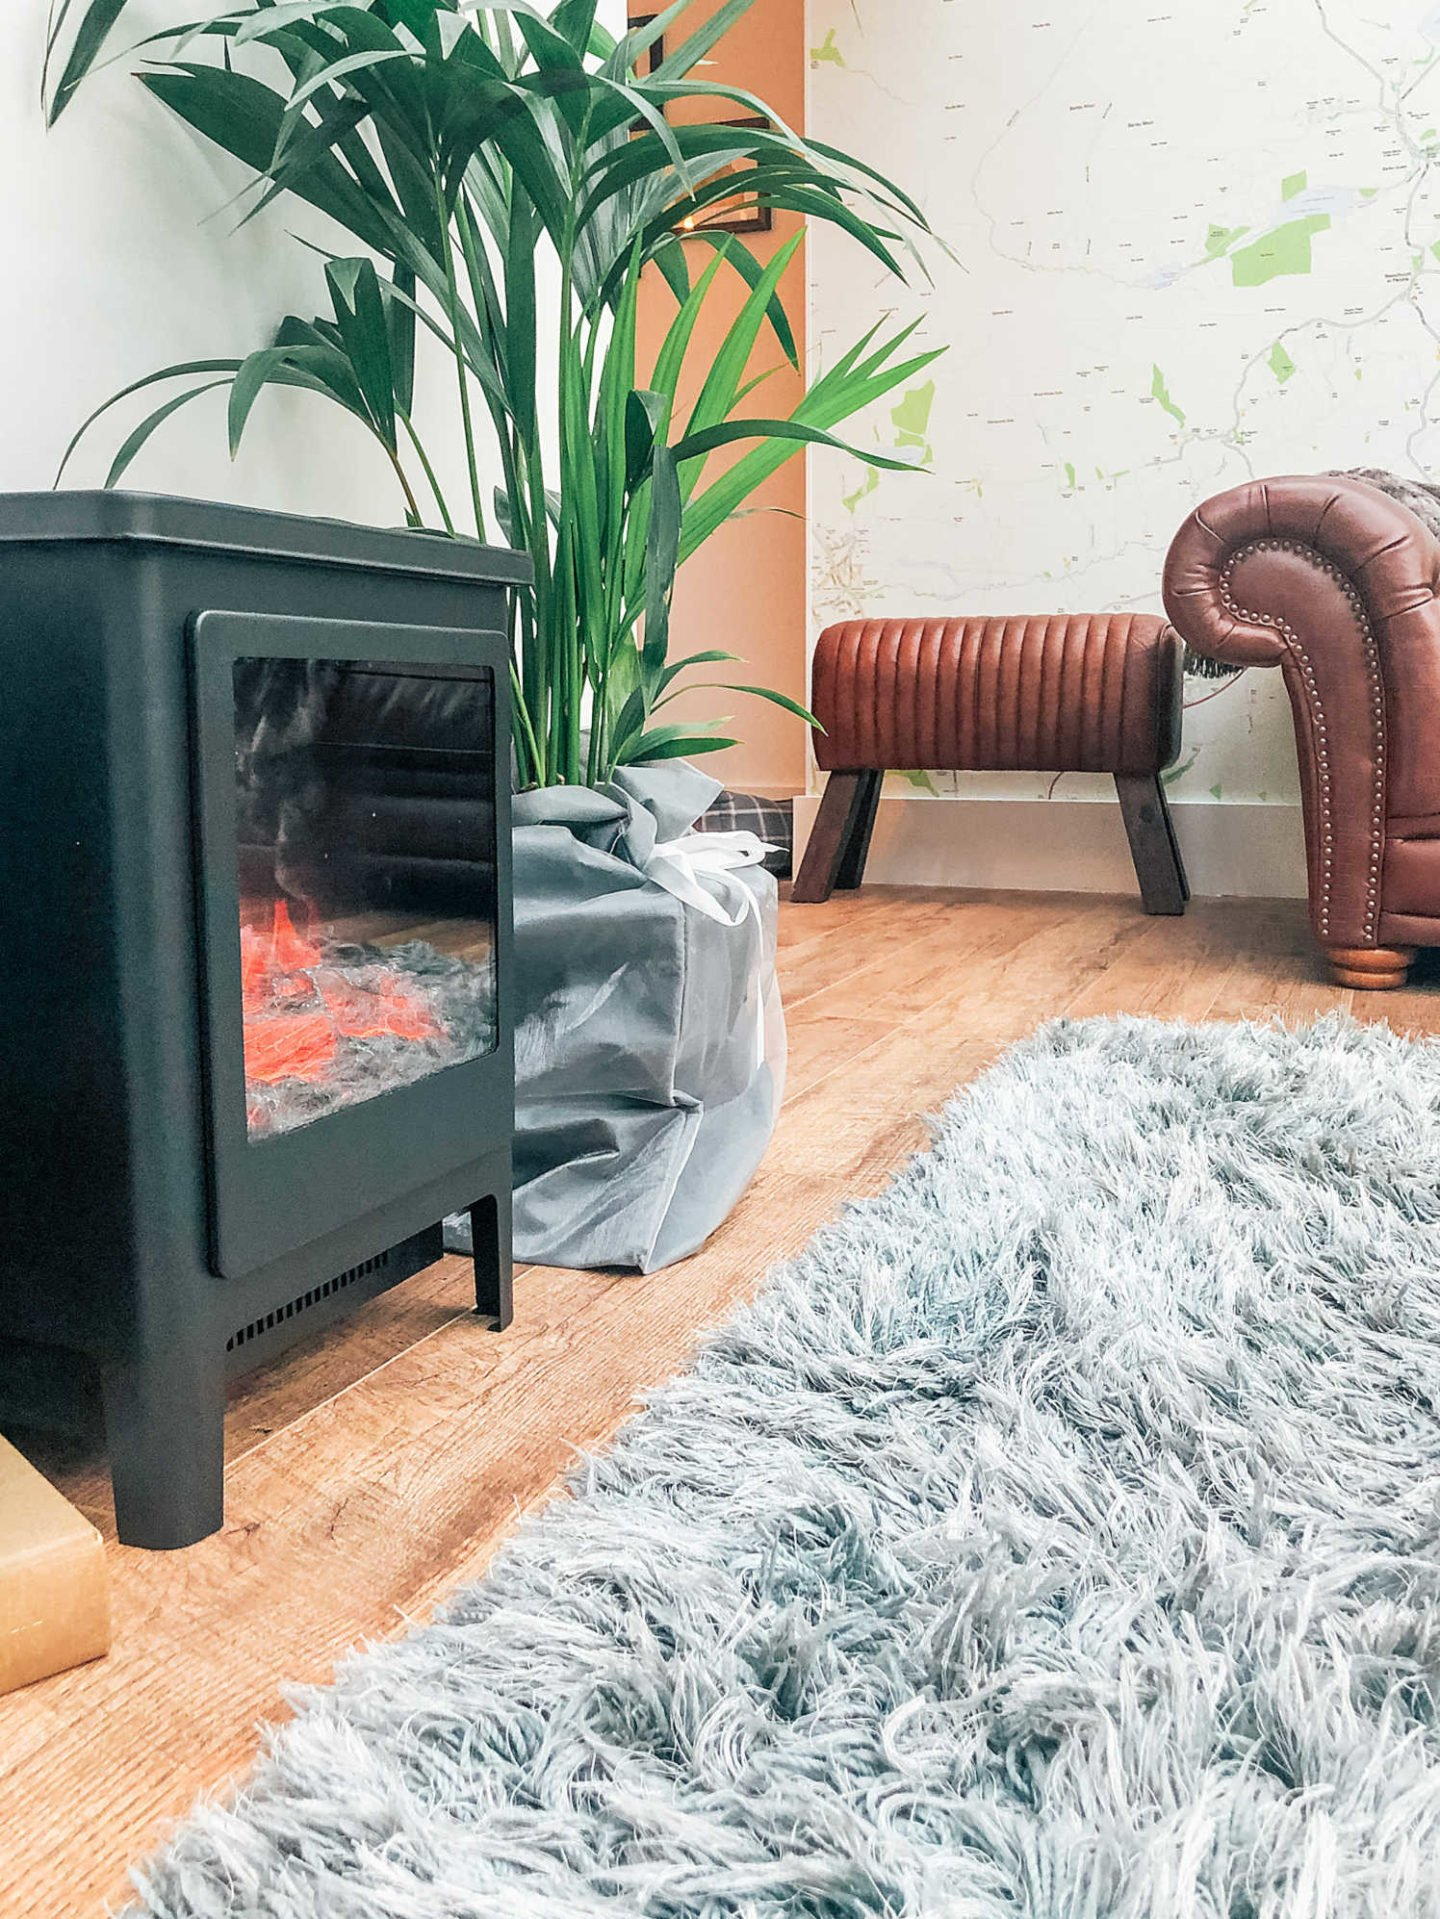 Von Haus electric fire, adding finishing touches to a garden room